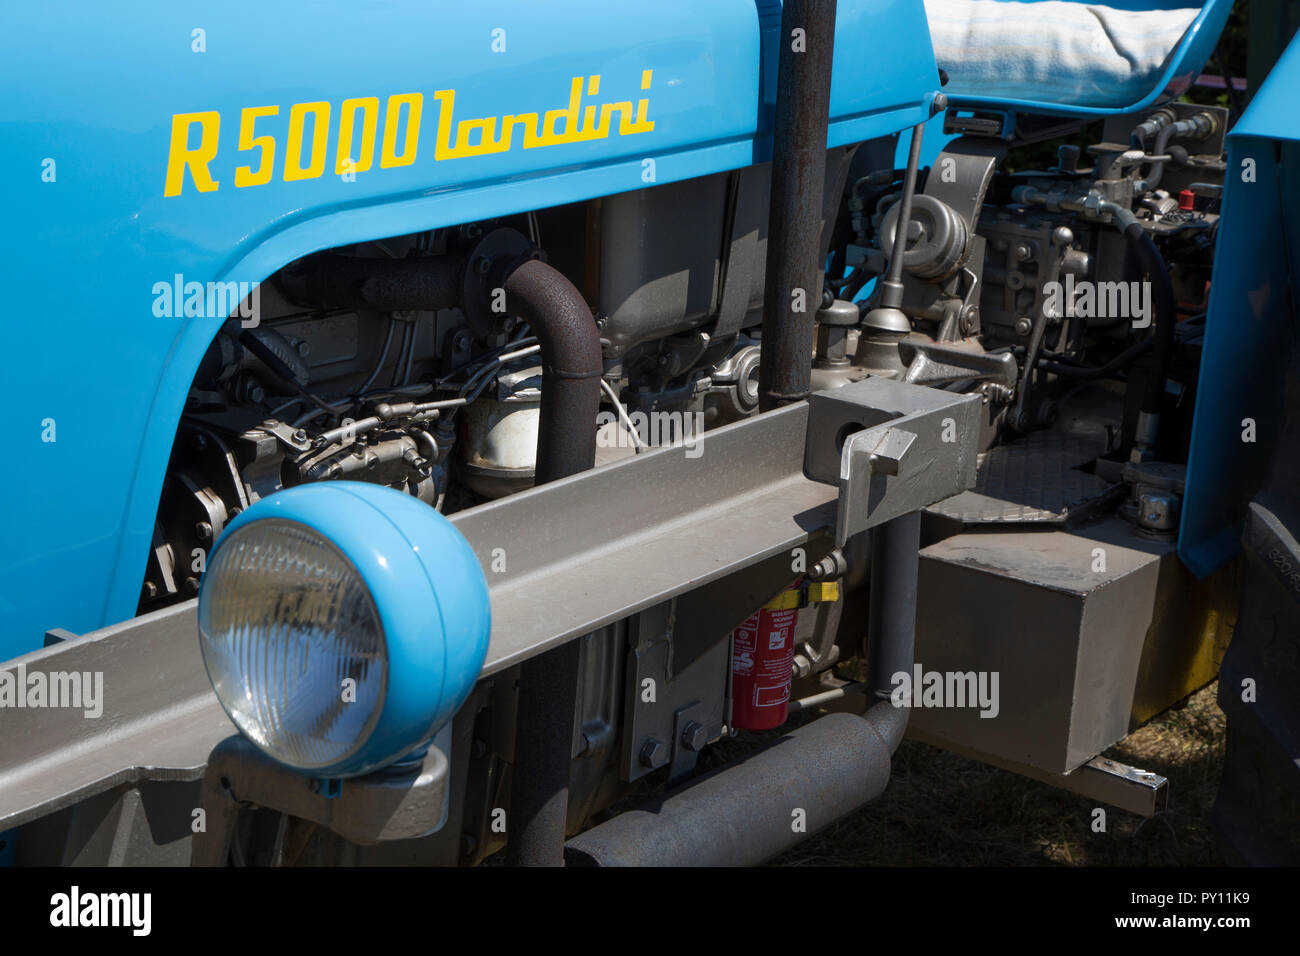 Close-up of oldtimer engine of blue Landini R5000 tractor - Stock Image